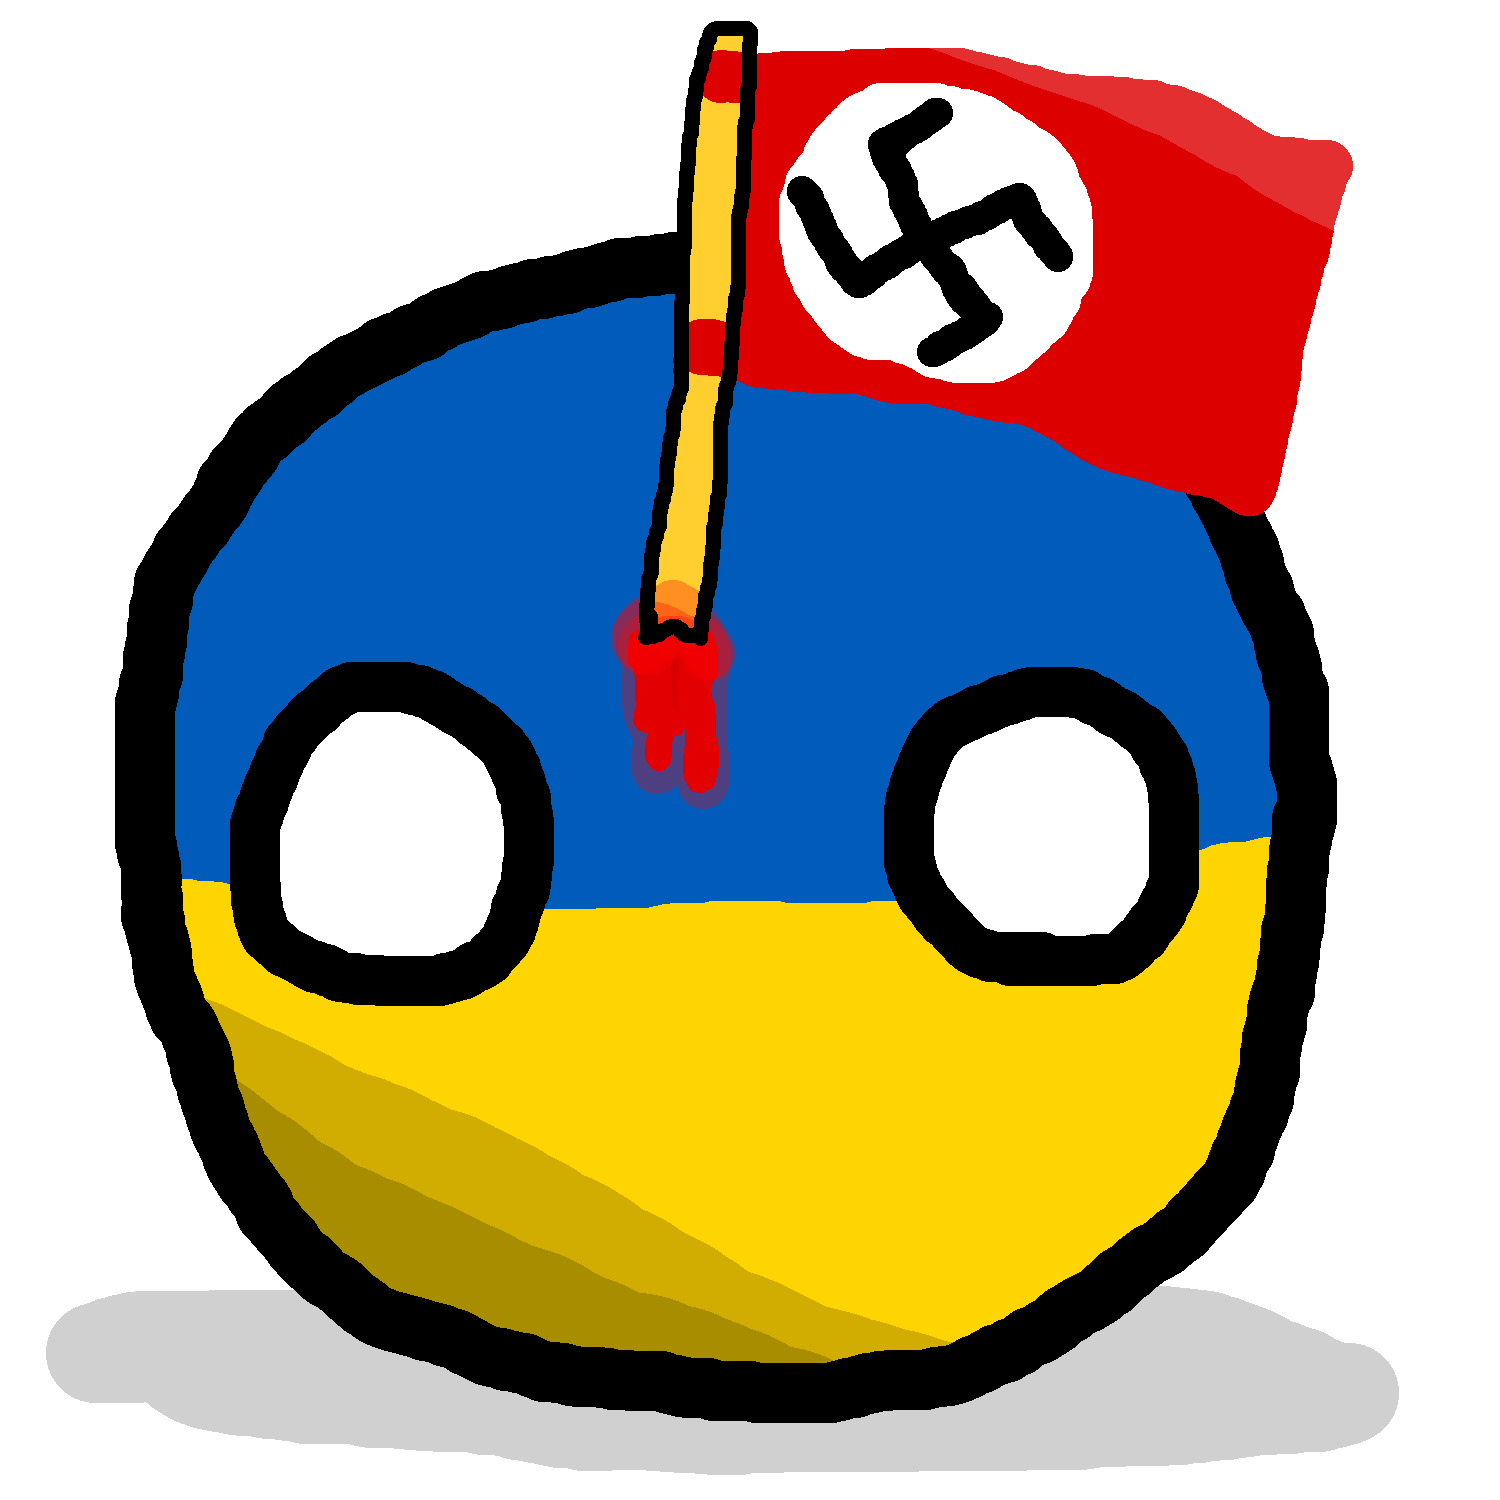 Nazi Ukraineball